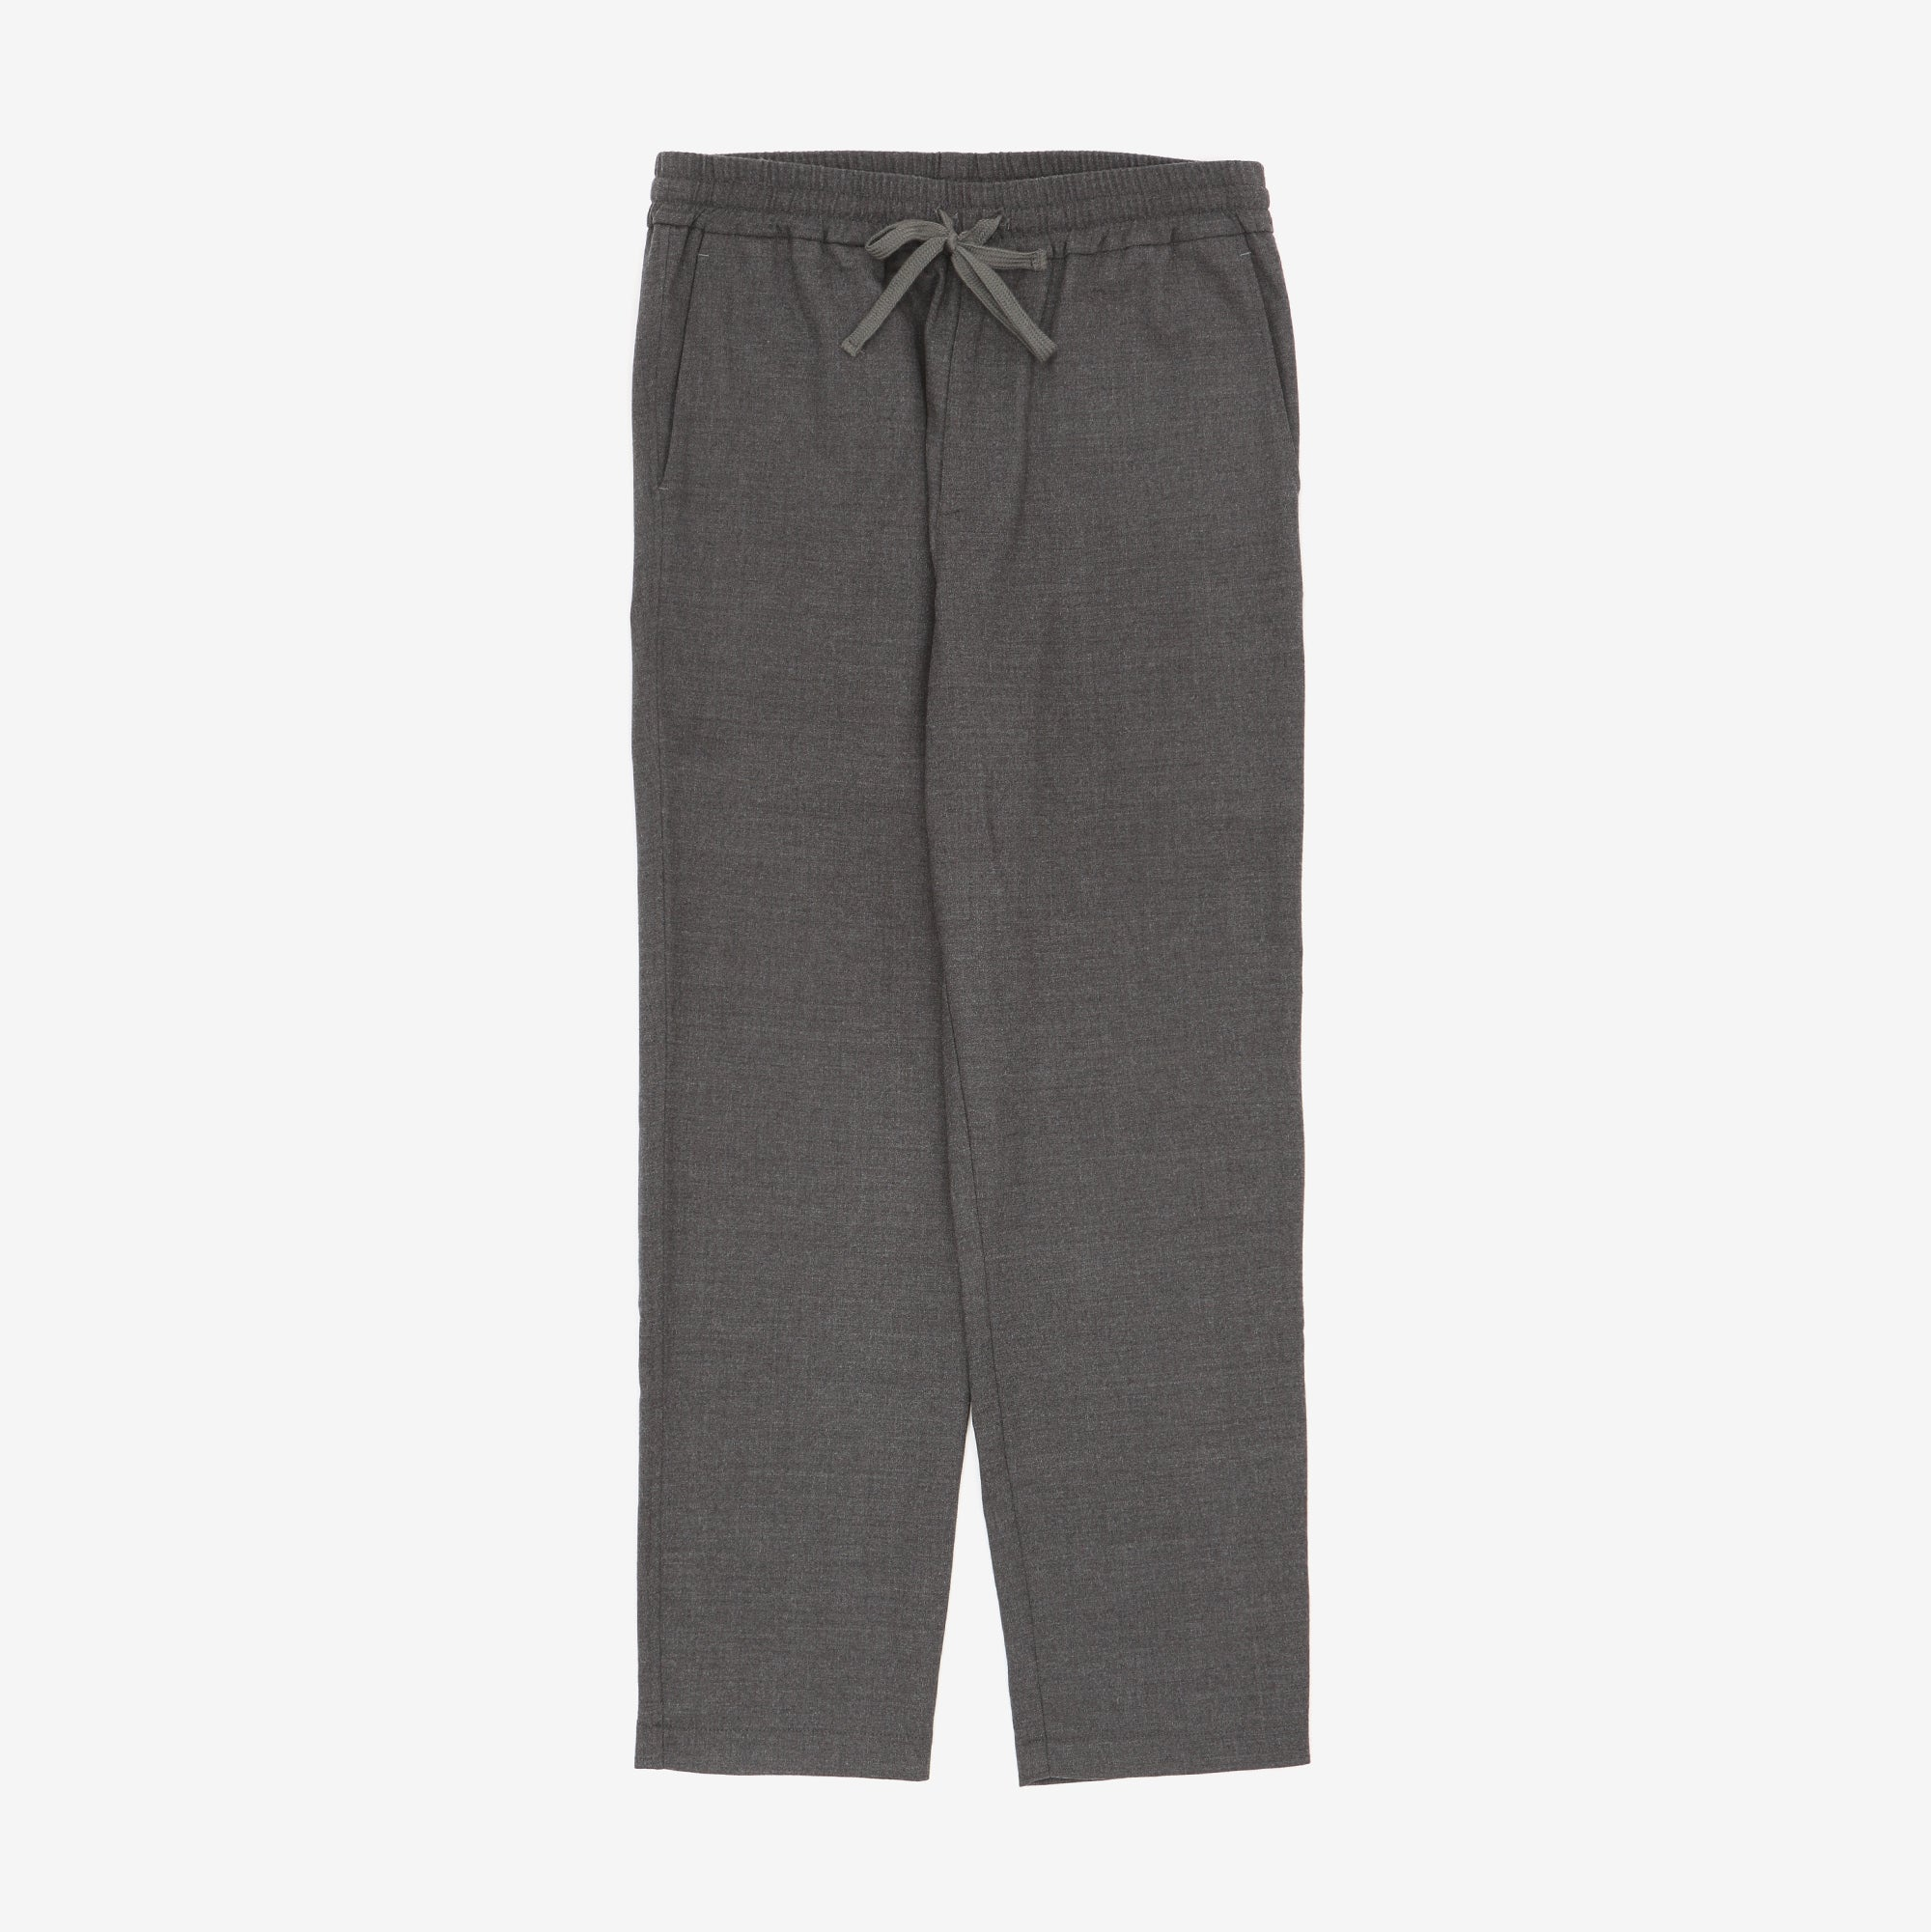 Cosma Frare Wool Pants